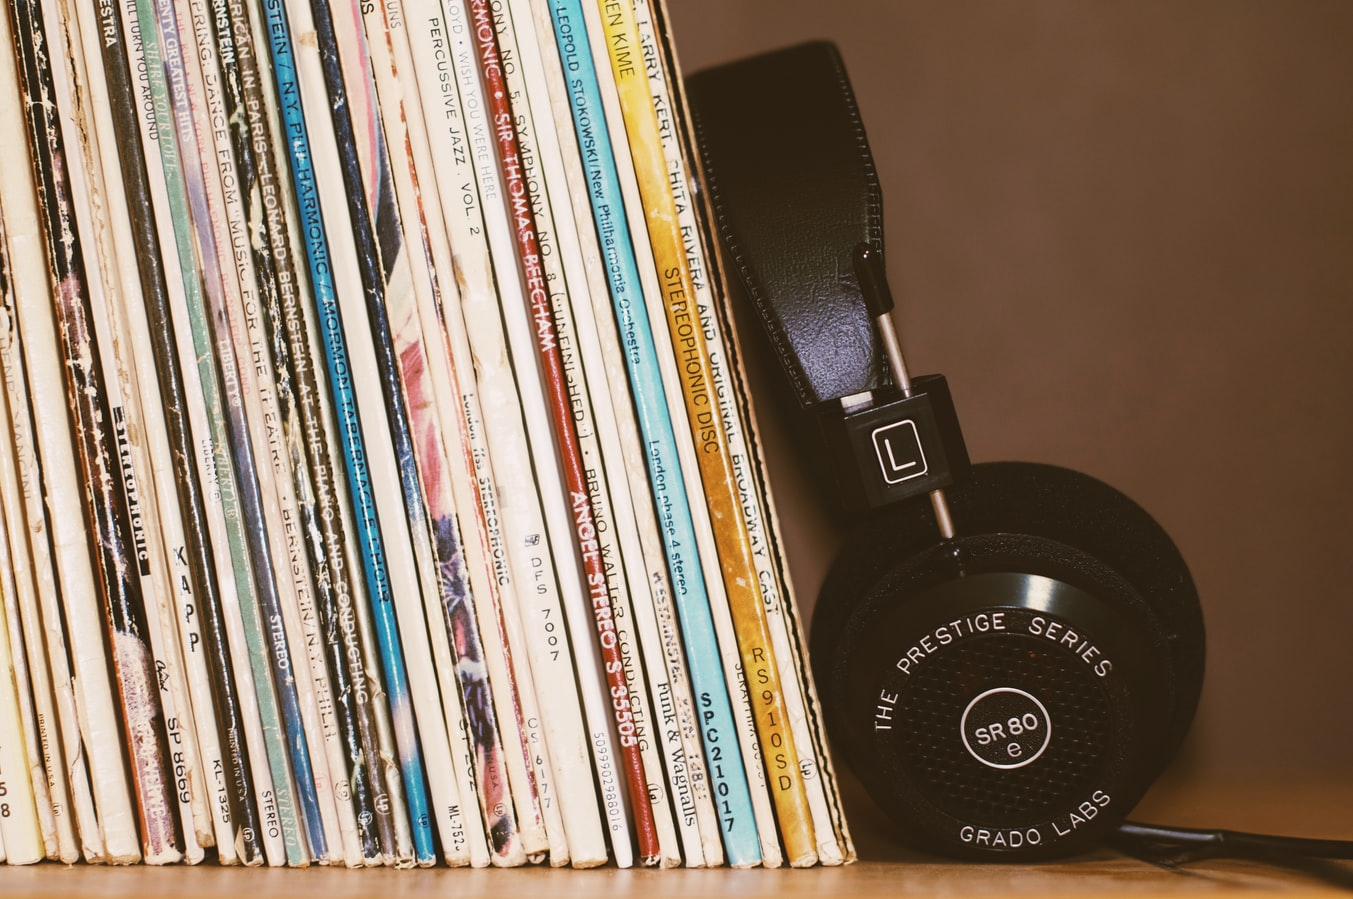 Who wins from the increased sale of vinyl?